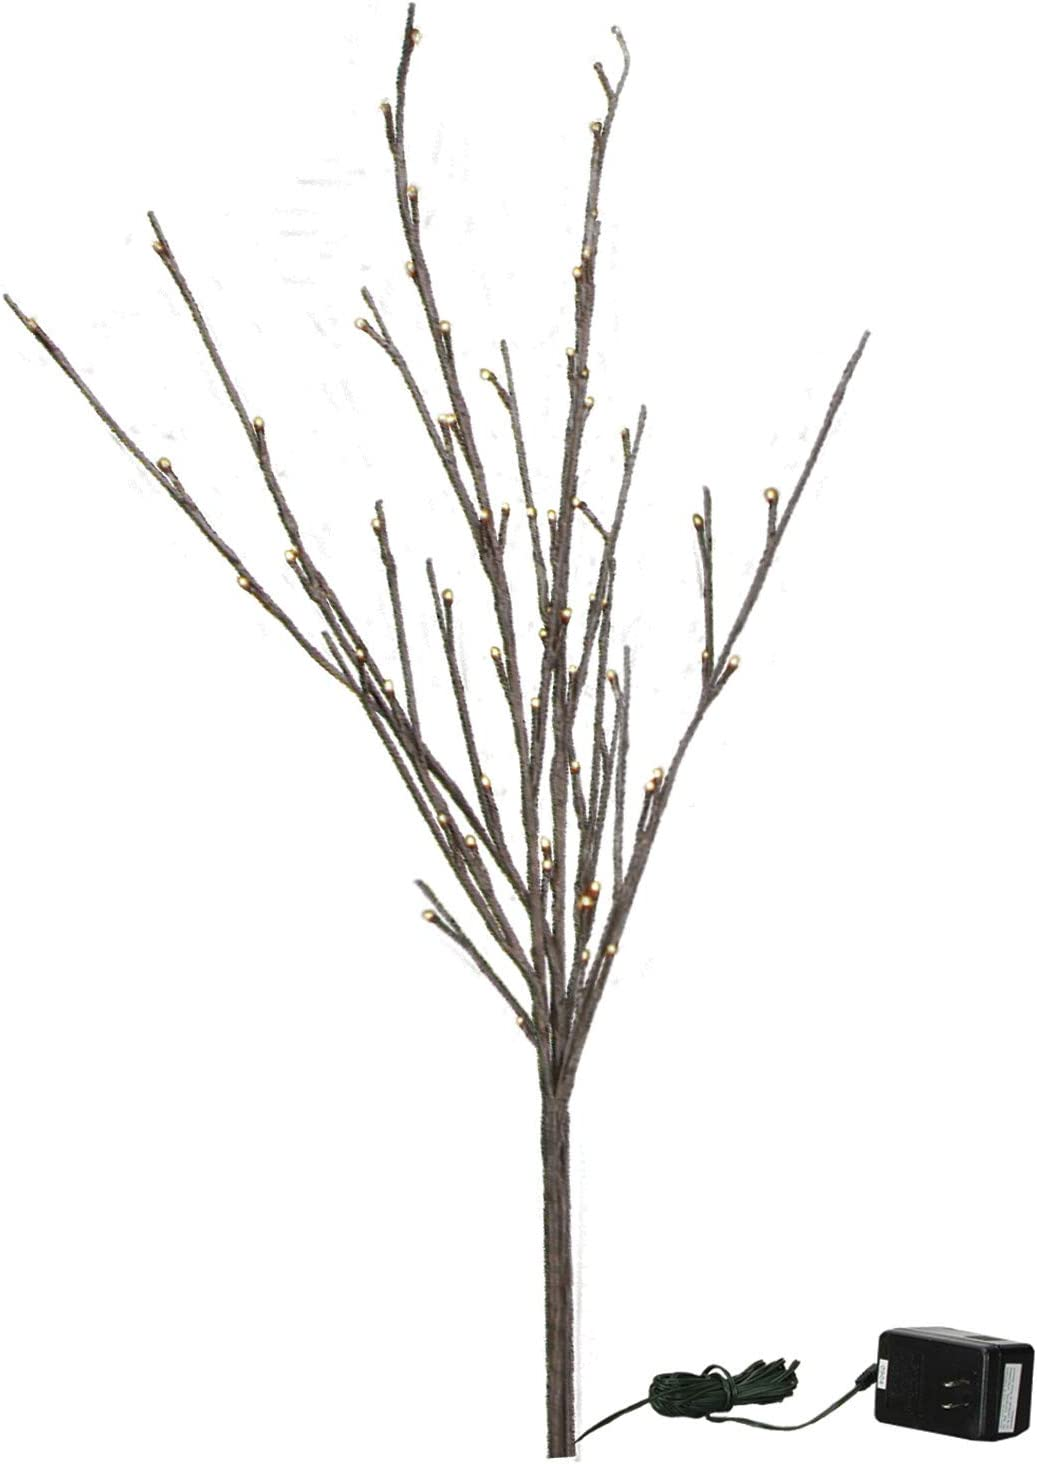 Primitives by Kathy 16362 Lighted Branch, Willow